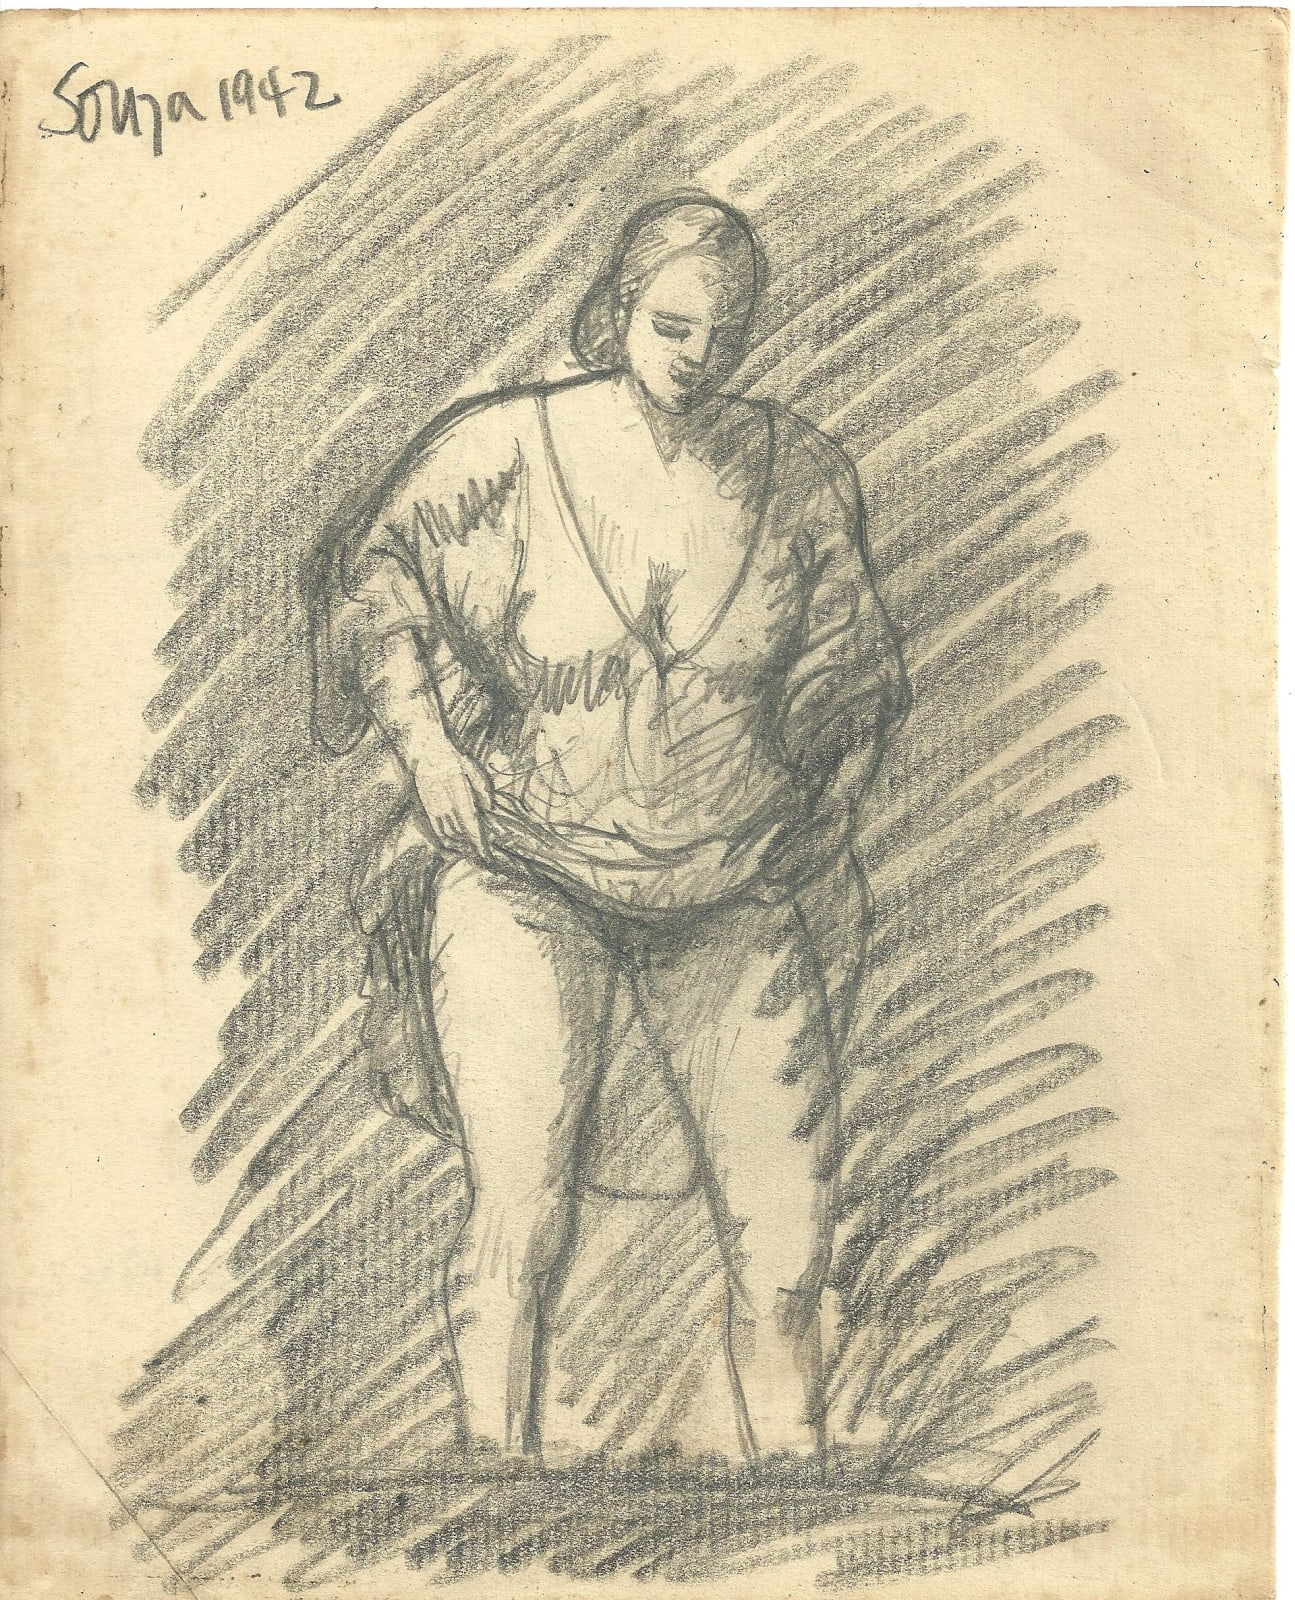 Francis Newton Souza, Untitled (after Rembrandt) recto ; Untitled verso, 1942